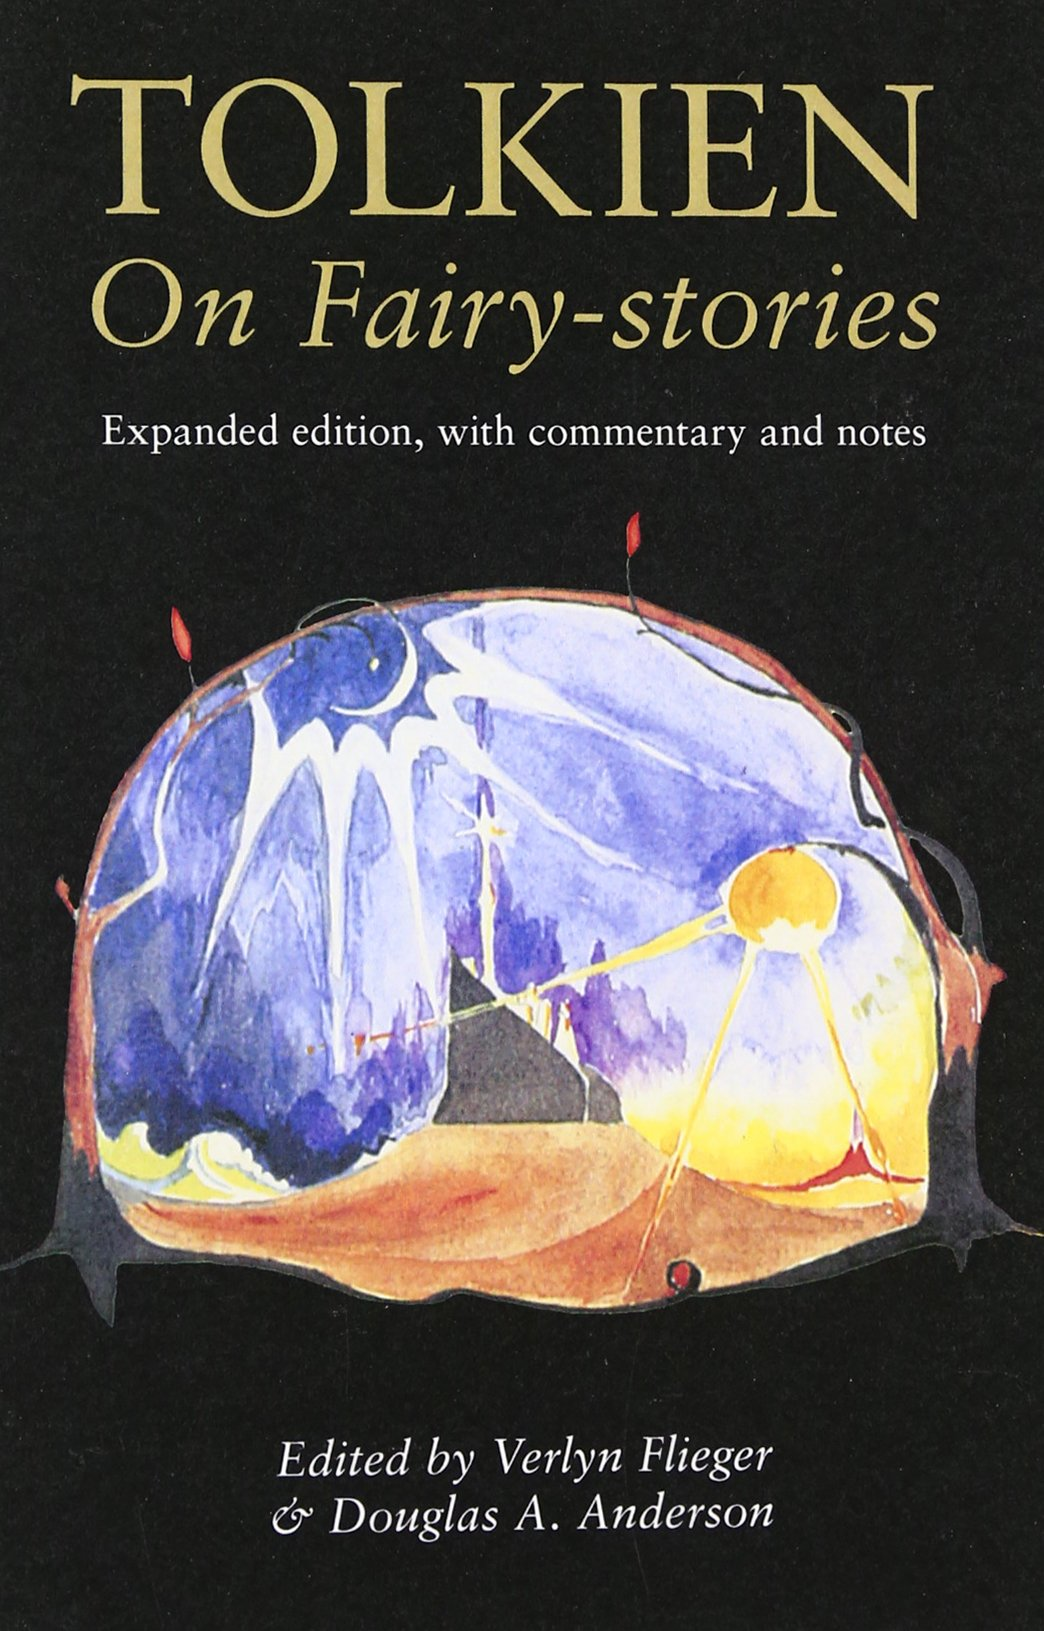 tolkien on fairy stories verlyn flieger douglas a anderson tolkien on fairy stories verlyn flieger douglas a anderson 9780007582914 com books